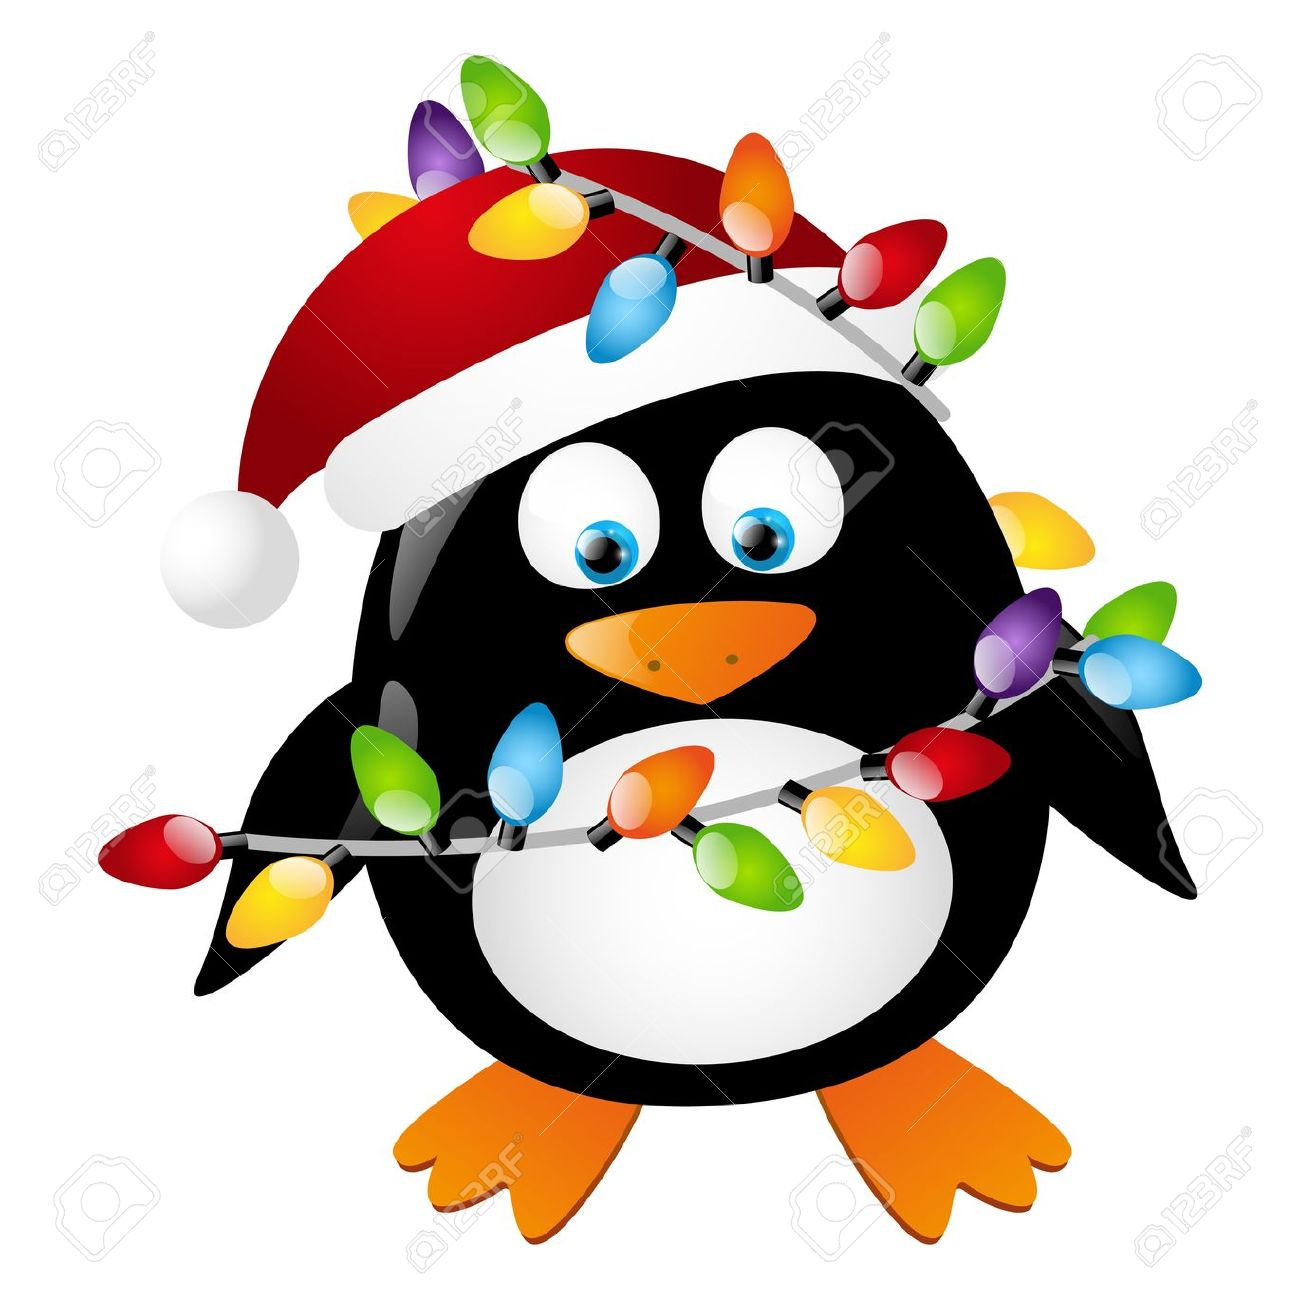 Penguin With Christmas Light Bulbs Royalty Free Cliparts, Vectors .